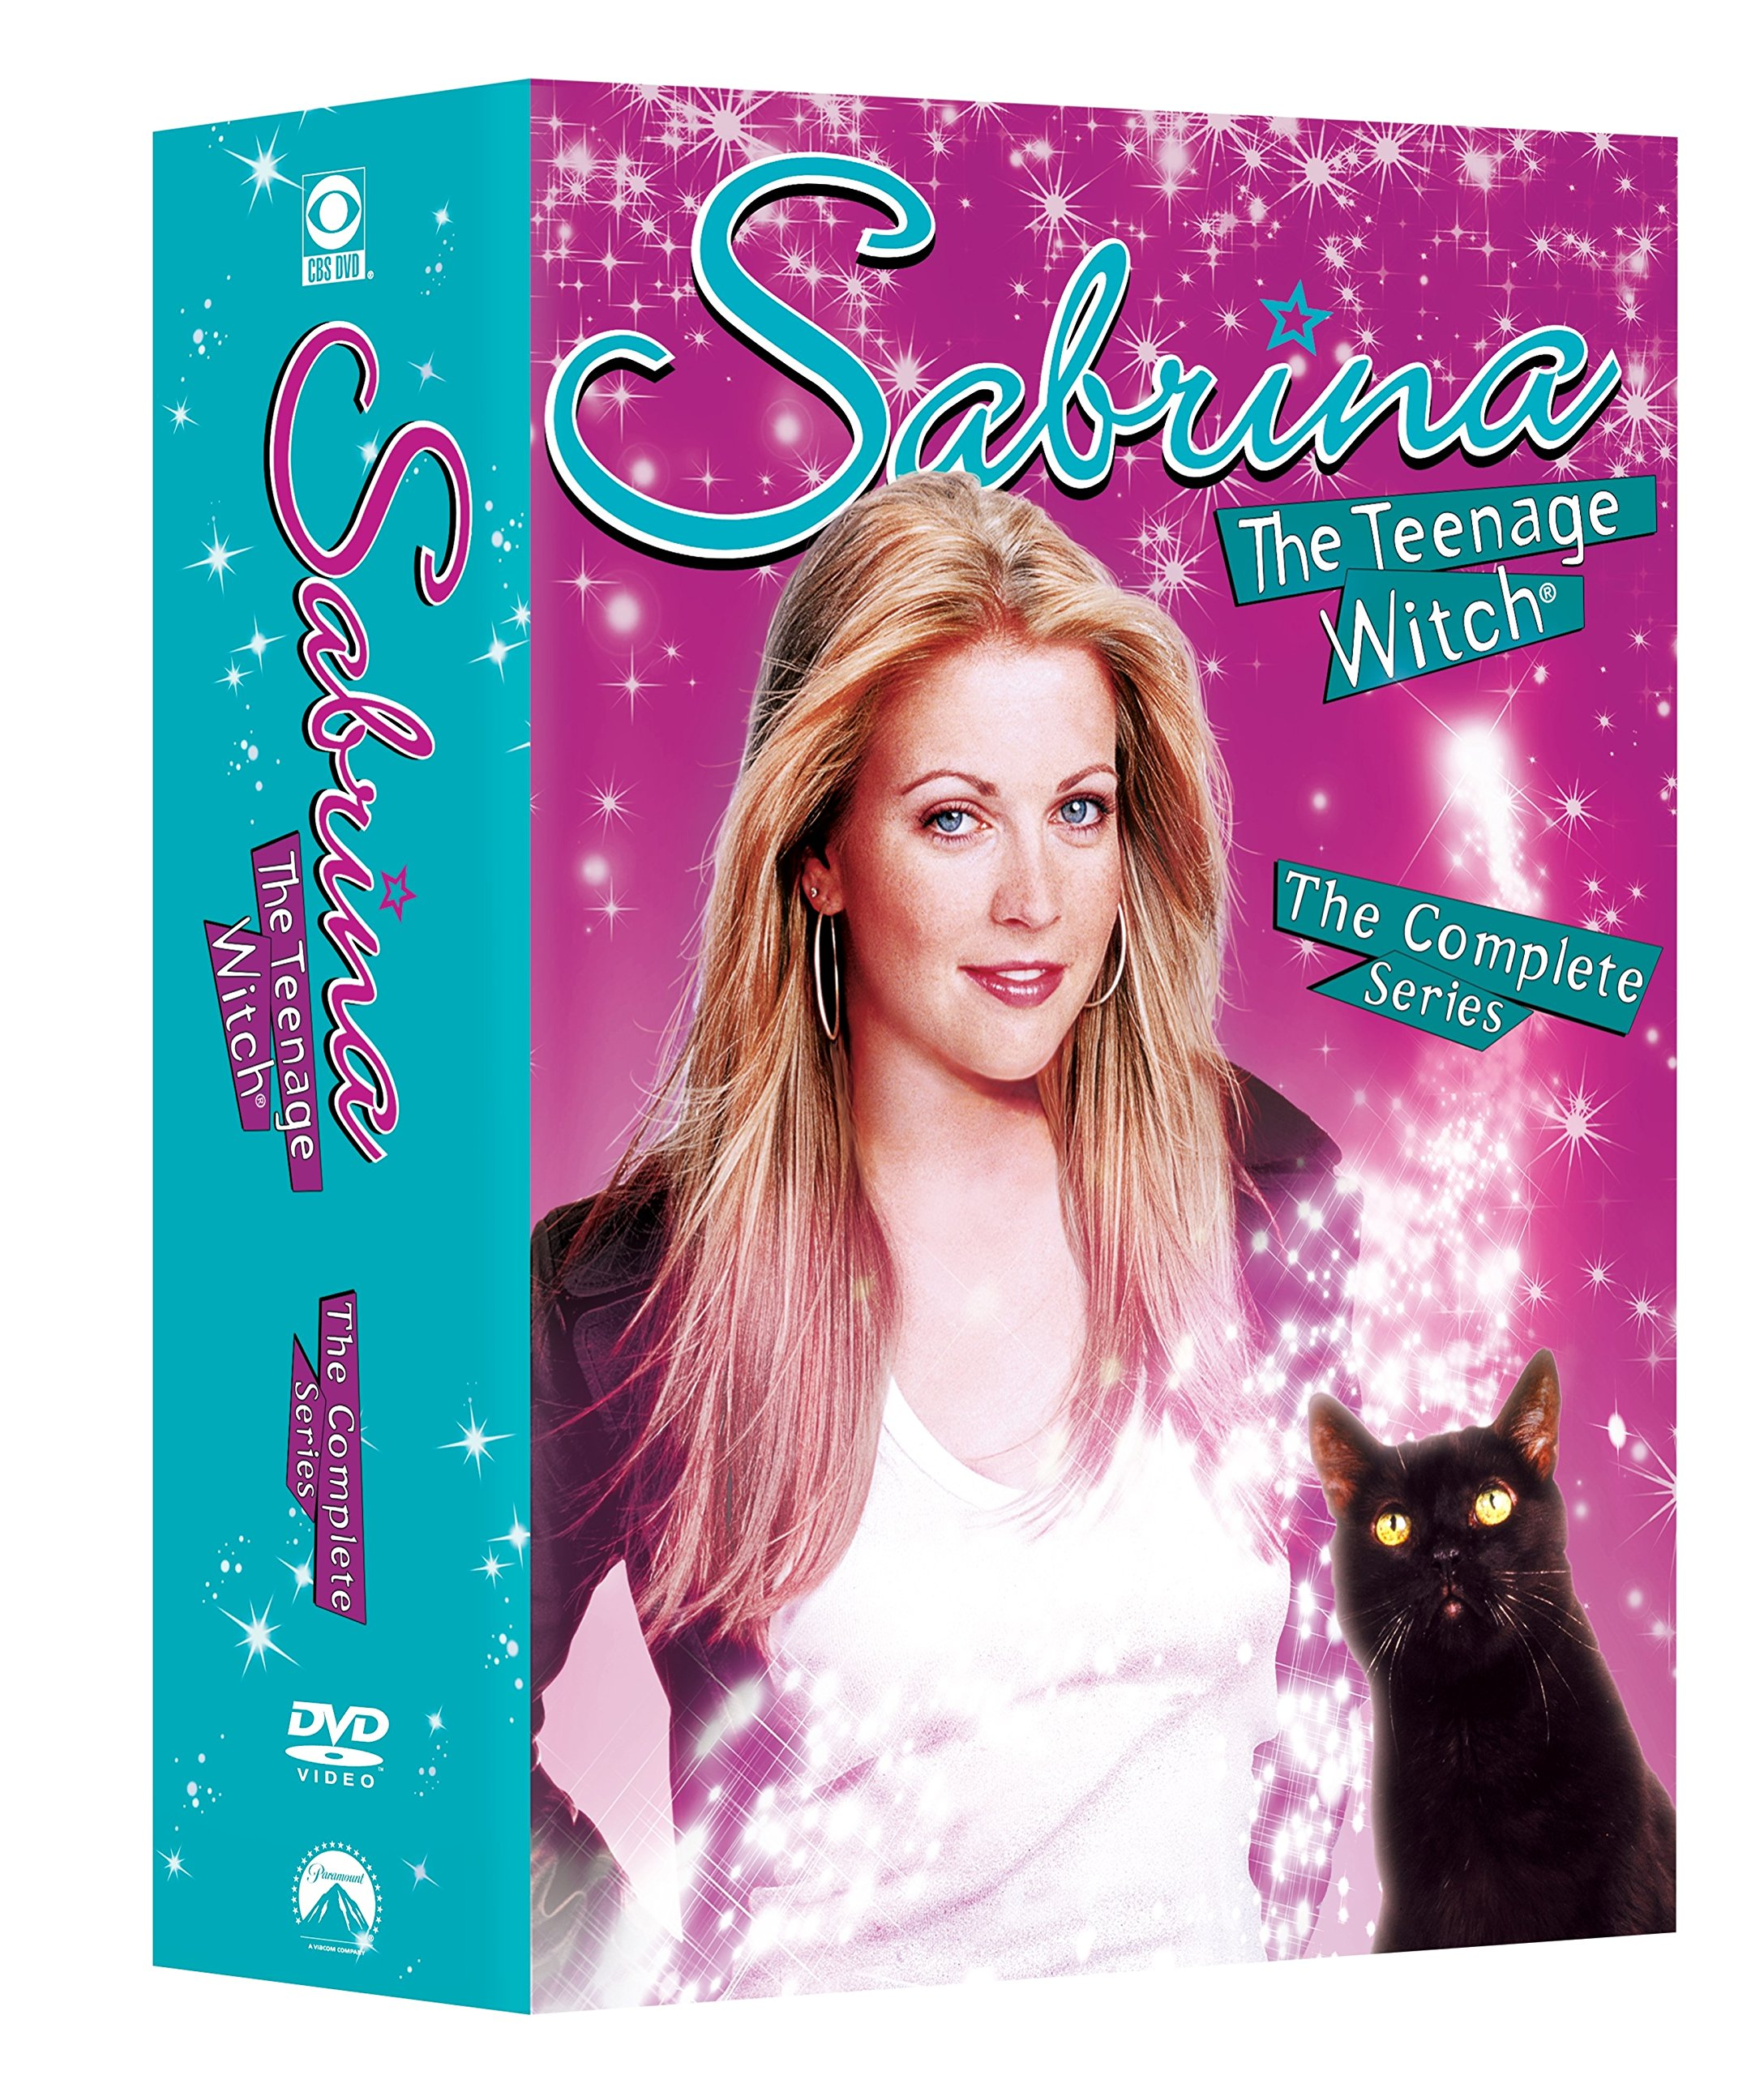 DVD : Sabrina The Teenage Witch: The Complete Series (Full Frame, Boxed Set, 24 Disc, Sensormatic)